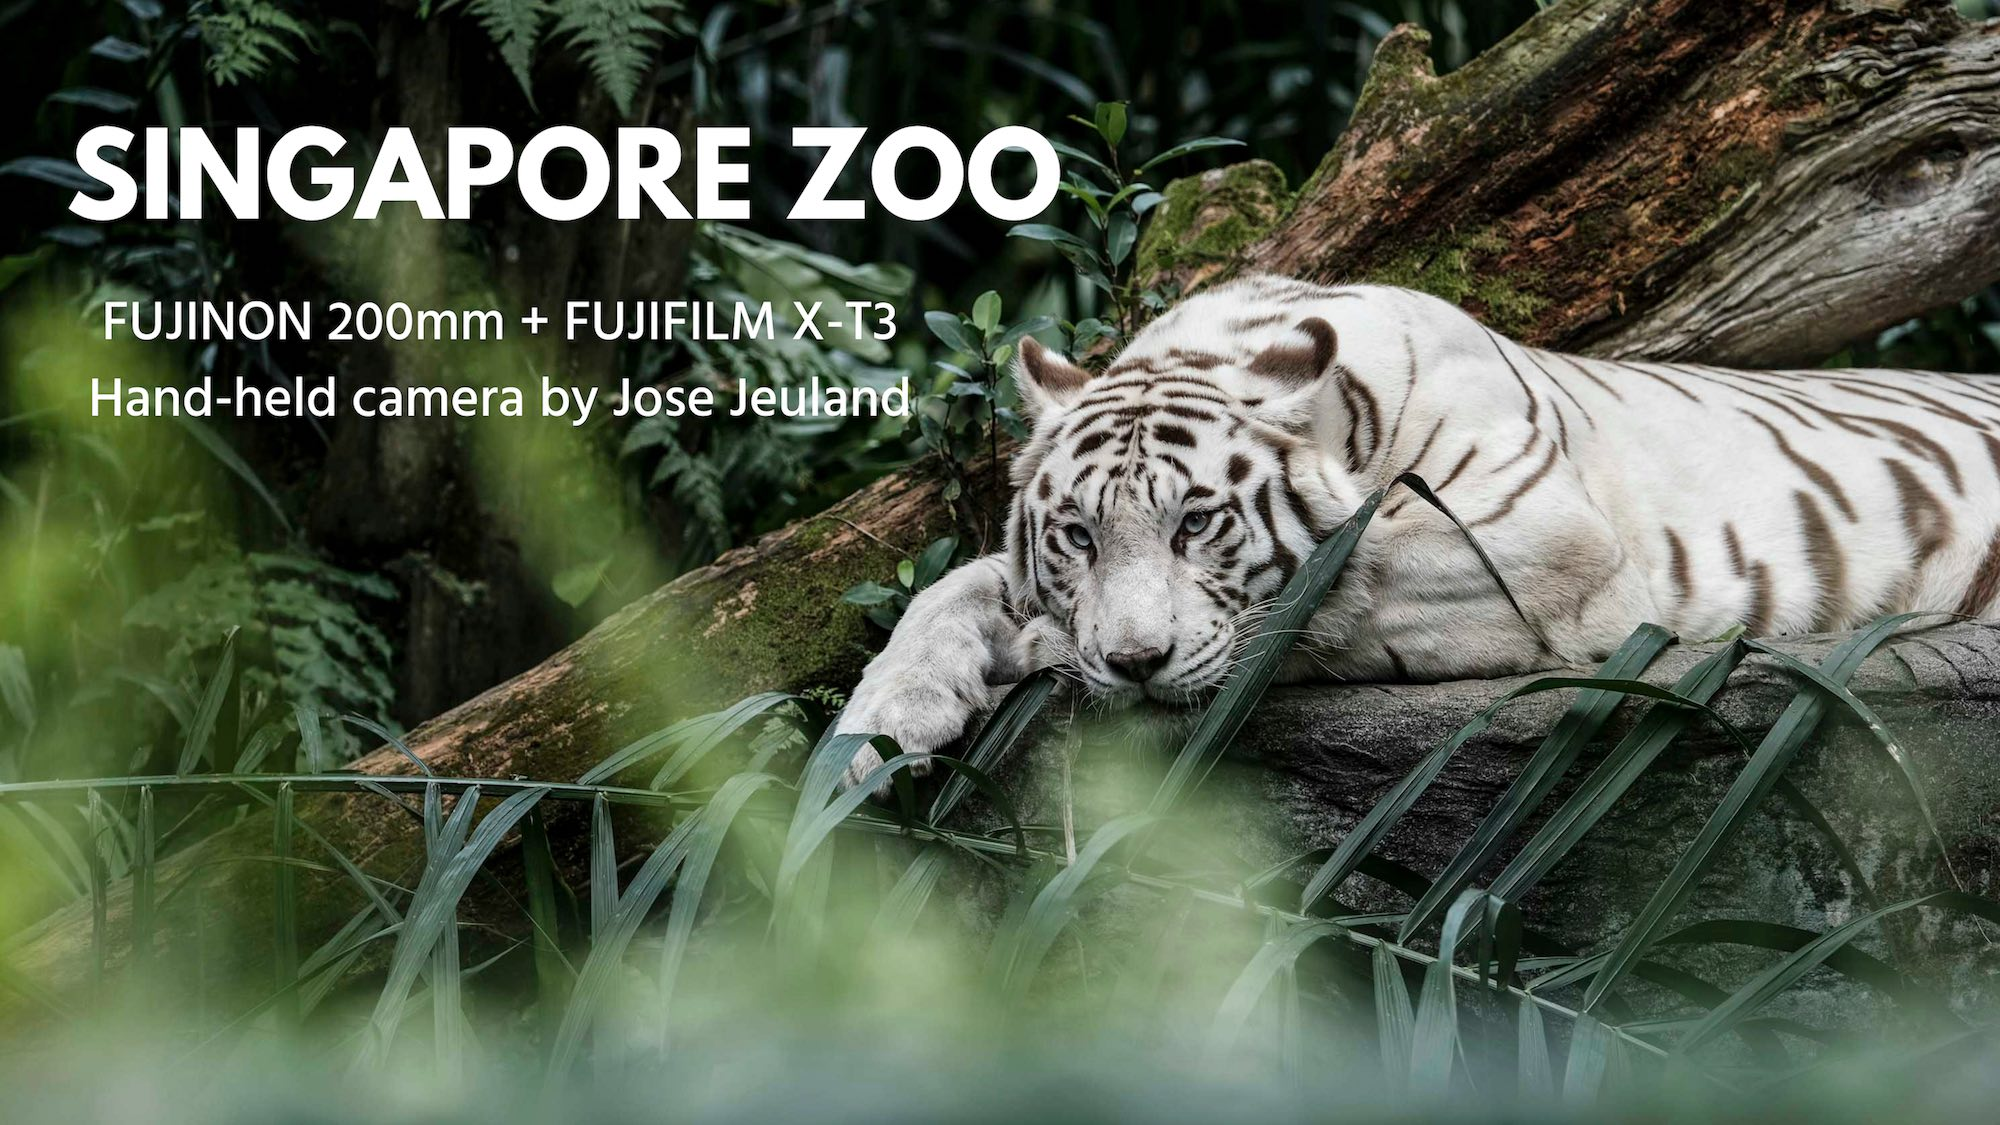 Singapore zoo animals fujinon 200mm f2 fujifilm XT3 tiger white